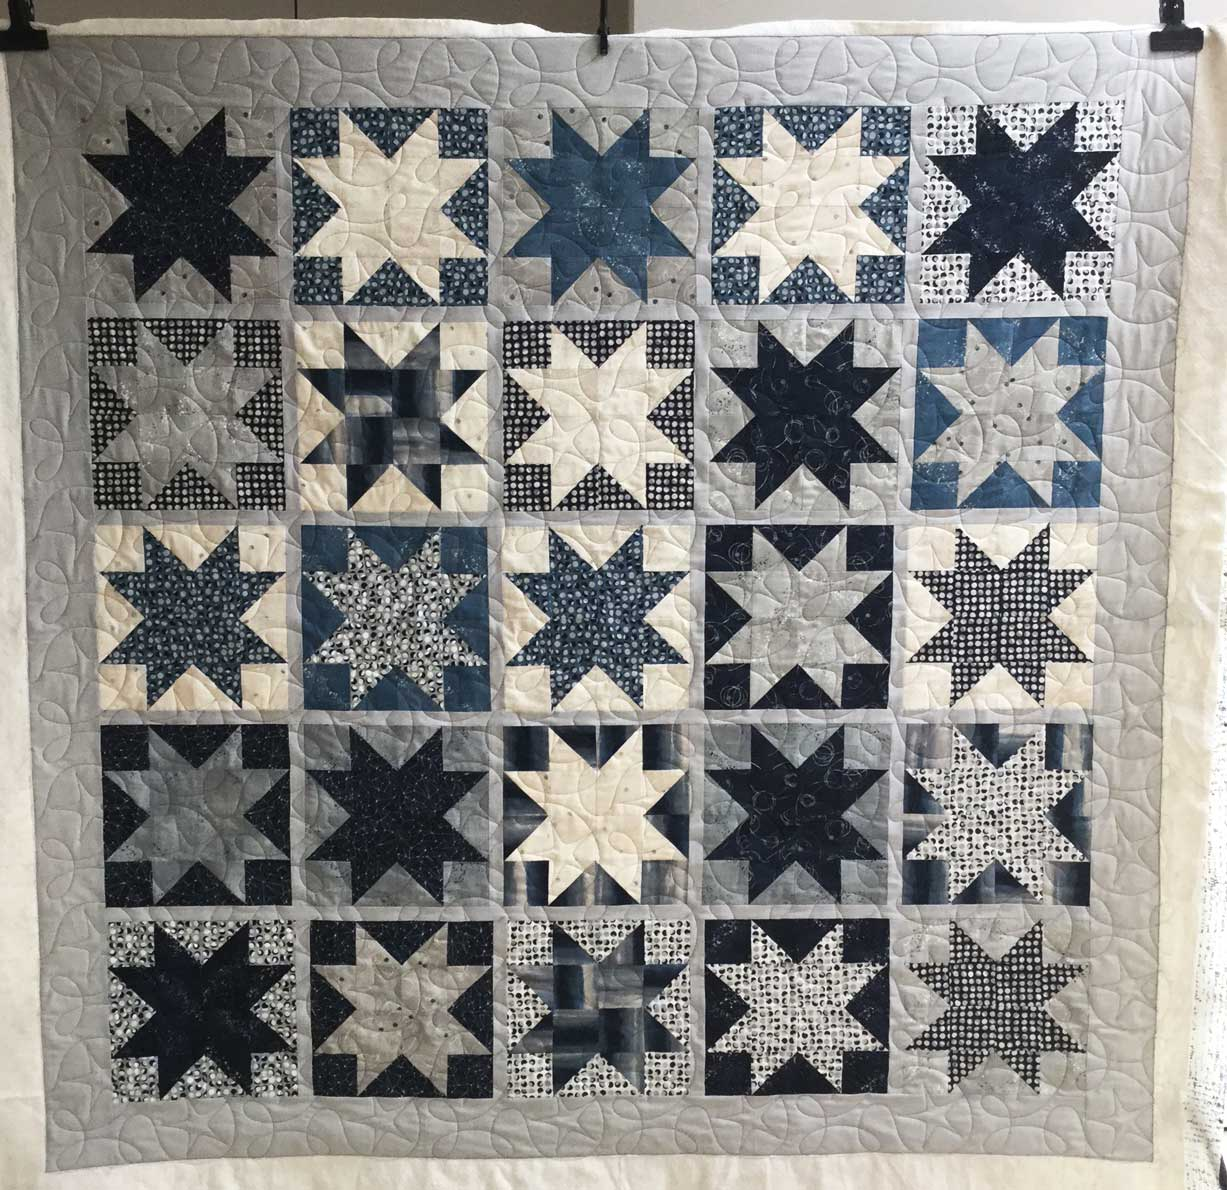 Fabadashery Longarm Quilting: August 2016 : long arm quilting uk - Adamdwight.com